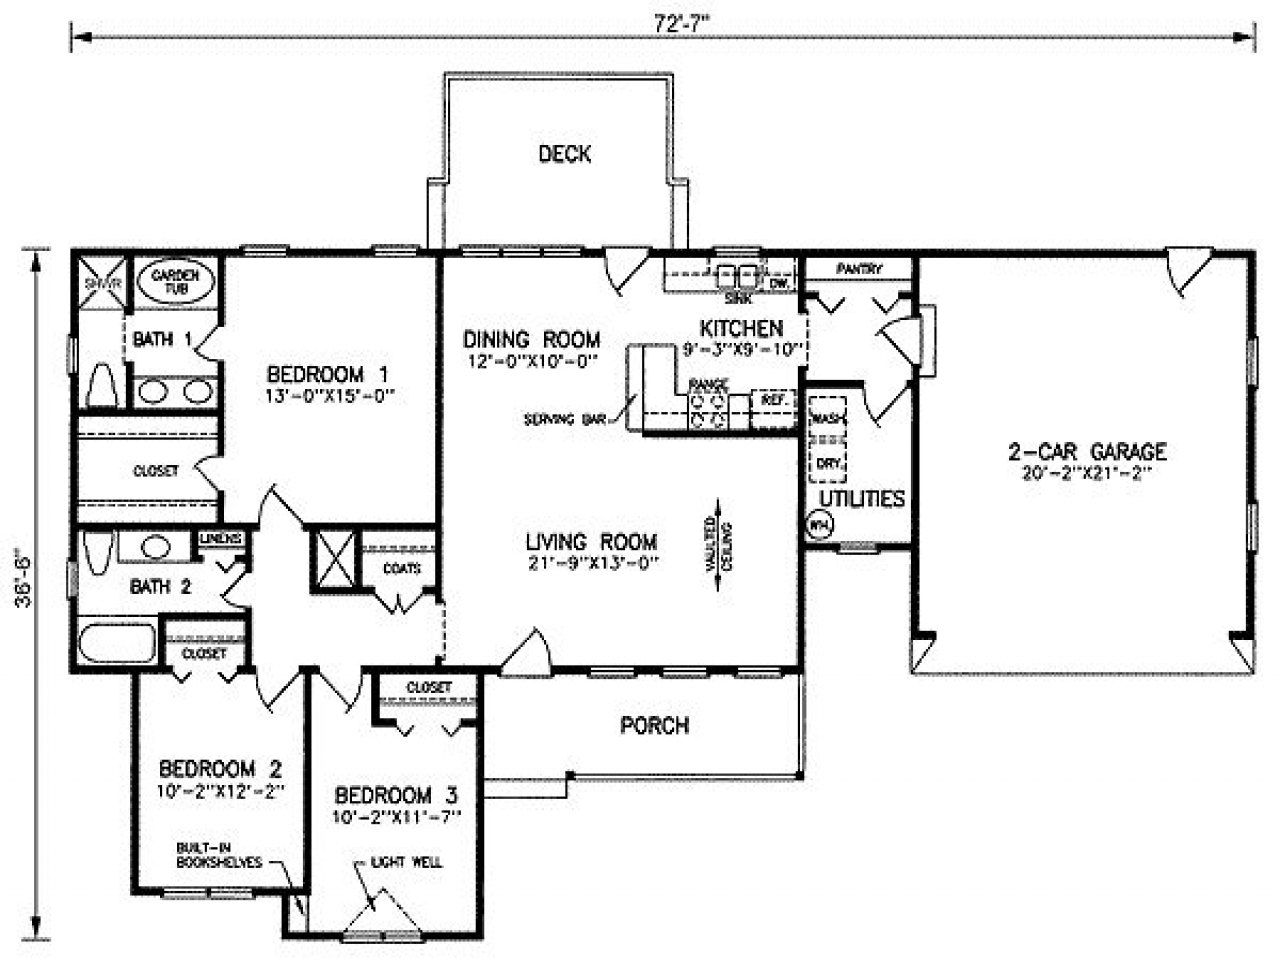 Open floor plan house plans 1500 sq ft 1500 square feet for 1500 sq ft floor plans